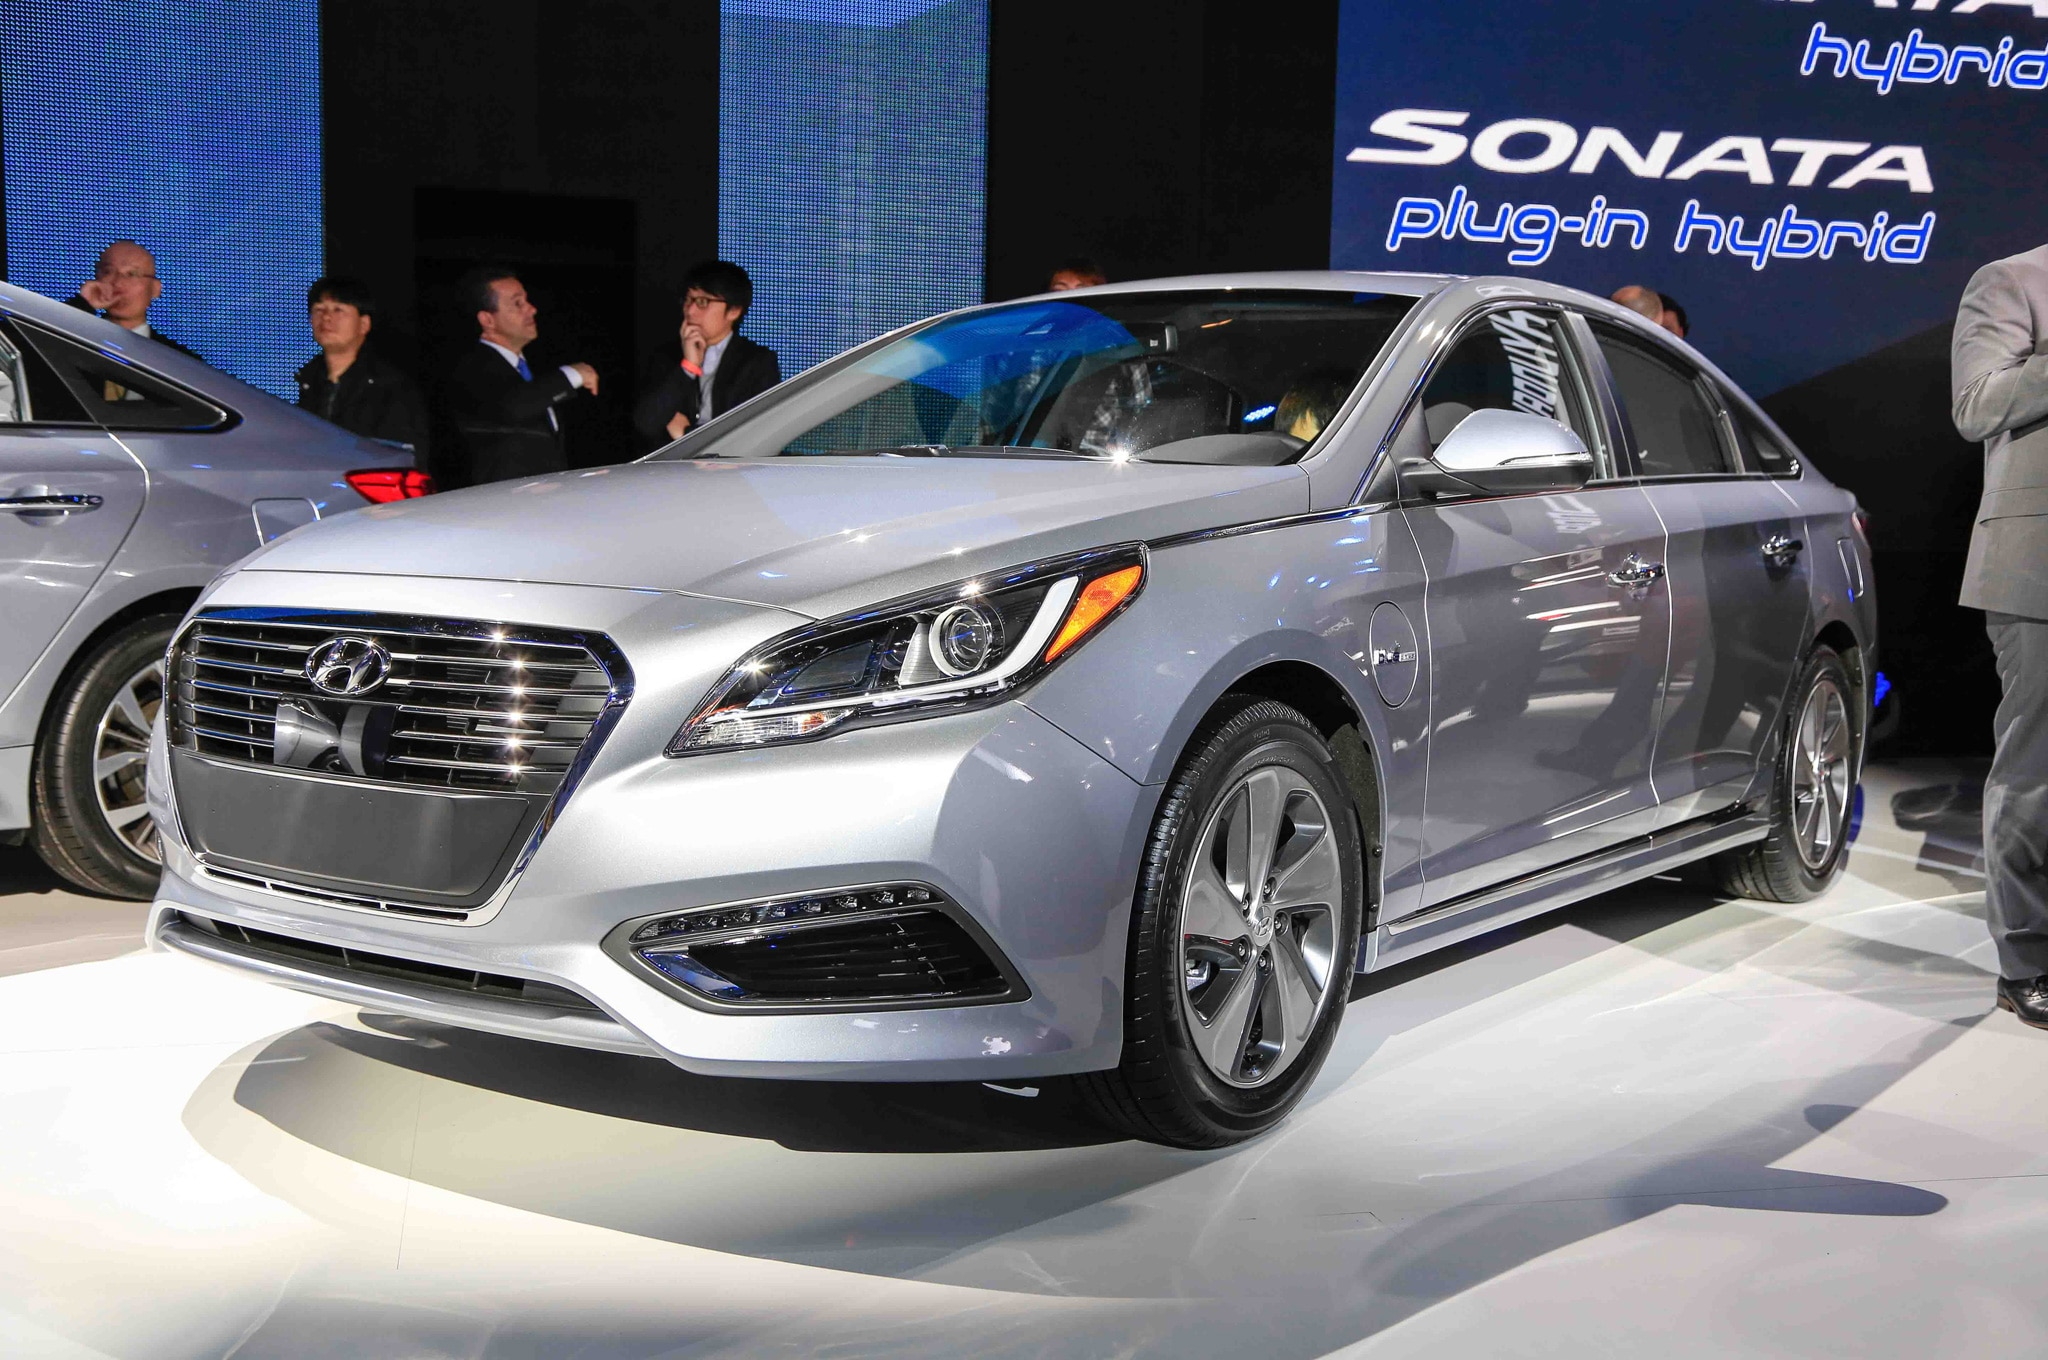 2016 hyundai sonata hybrid and plug in hybrid debut in detroit. Black Bedroom Furniture Sets. Home Design Ideas